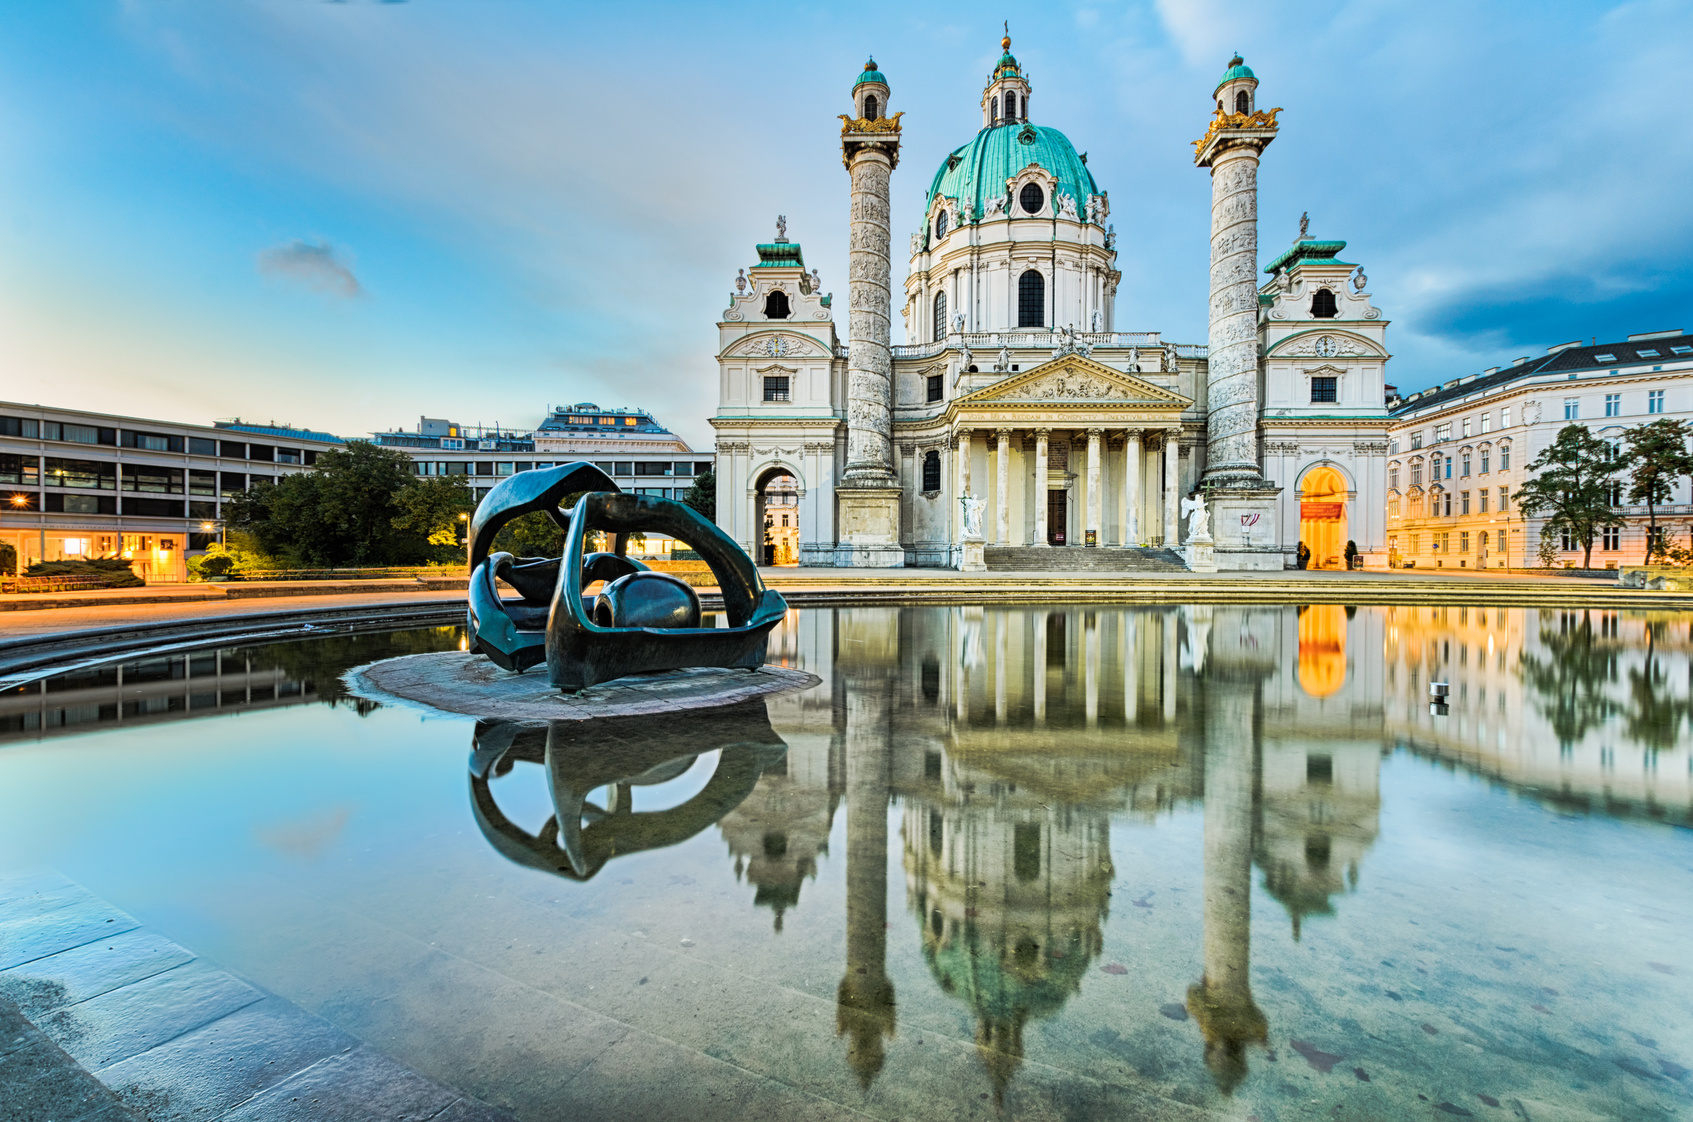 Vienna_sunrise_Fotolia_57246232_Subscription_Monthly_M.jpg